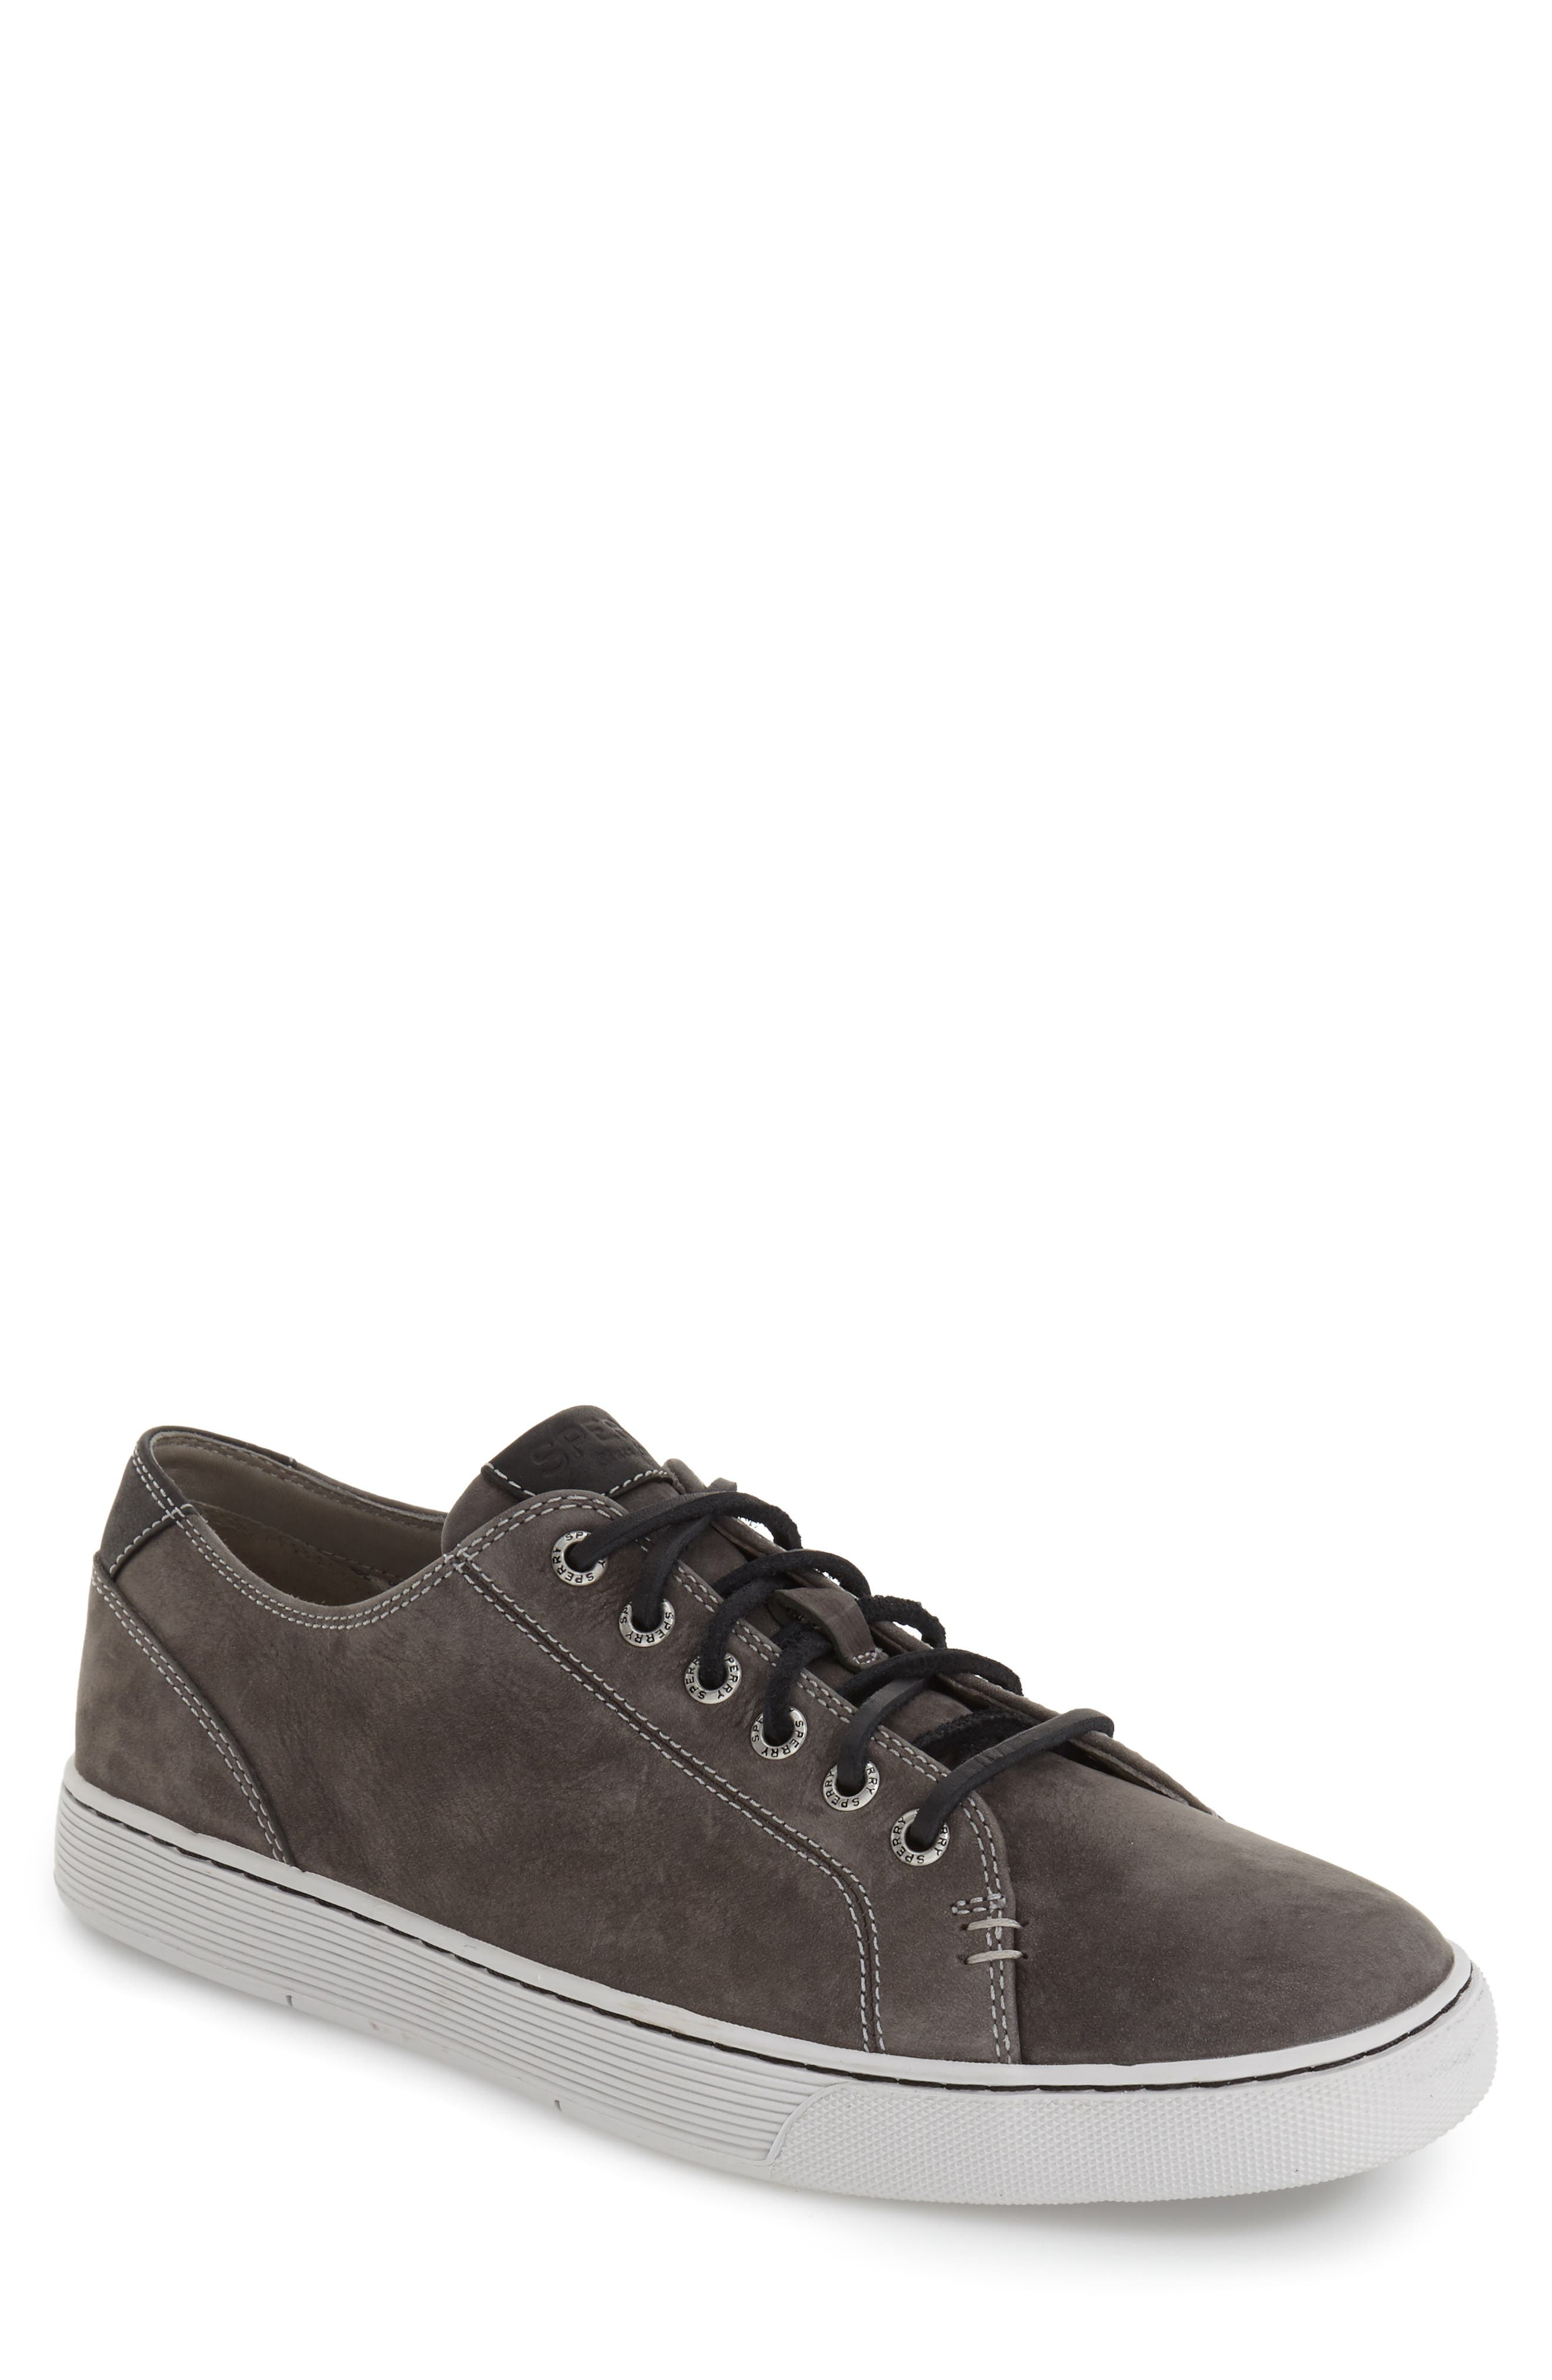 SPERRY, Gold Cup LLT Sneaker, Alternate thumbnail 2, color, GREY SUEDE